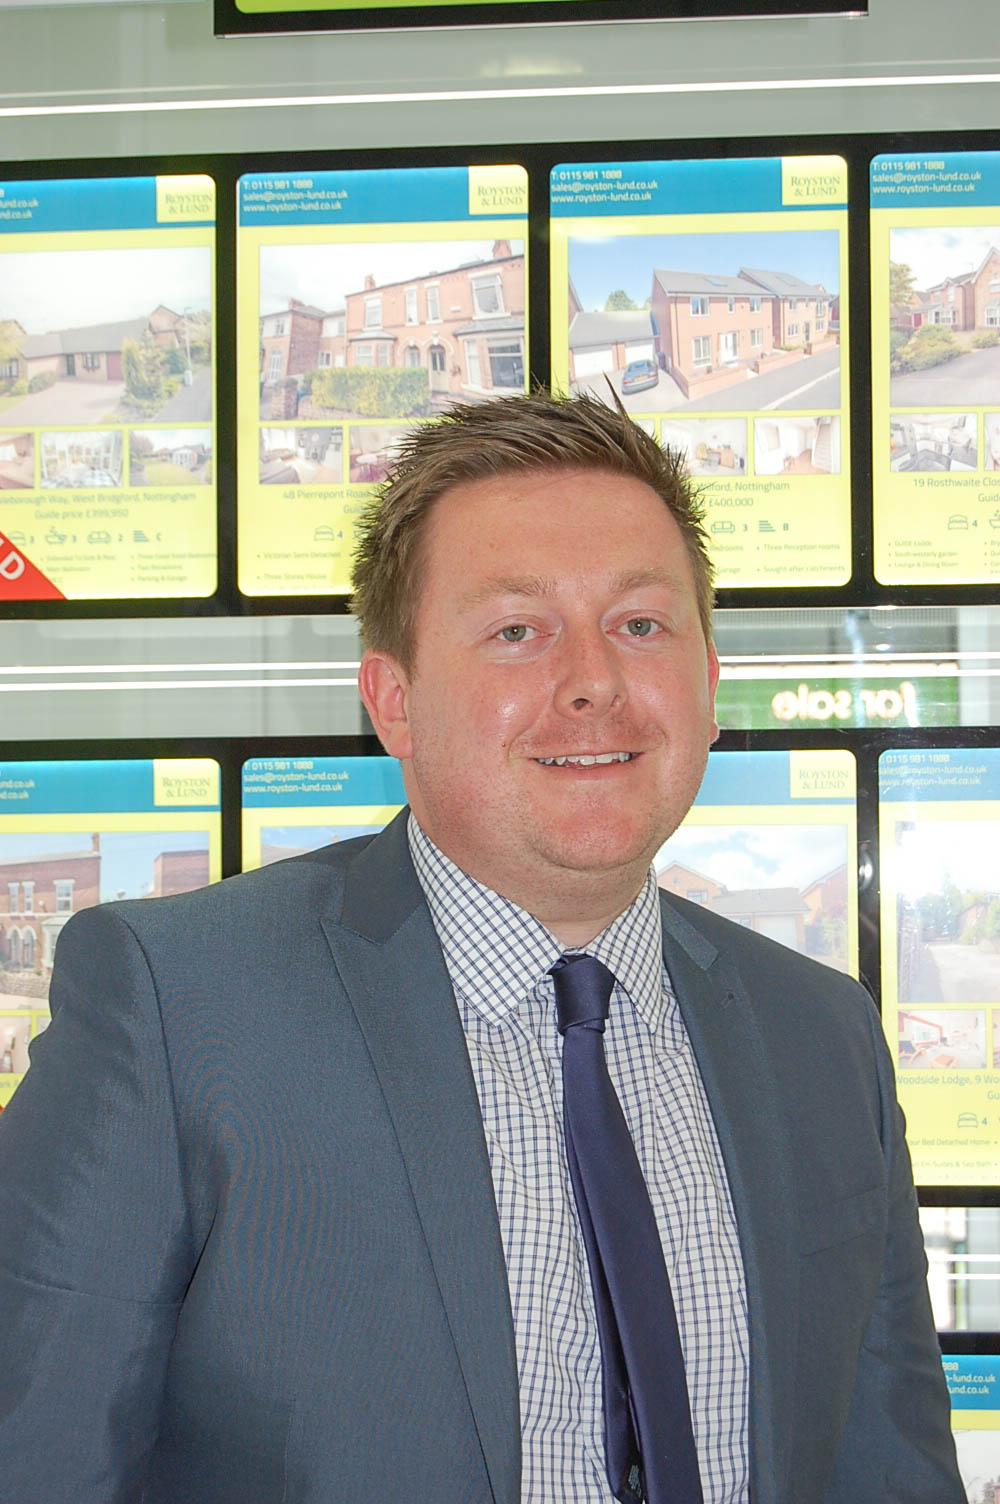 WEST BRIDGFORD SALES - ALEX JOINS THE TEAM!